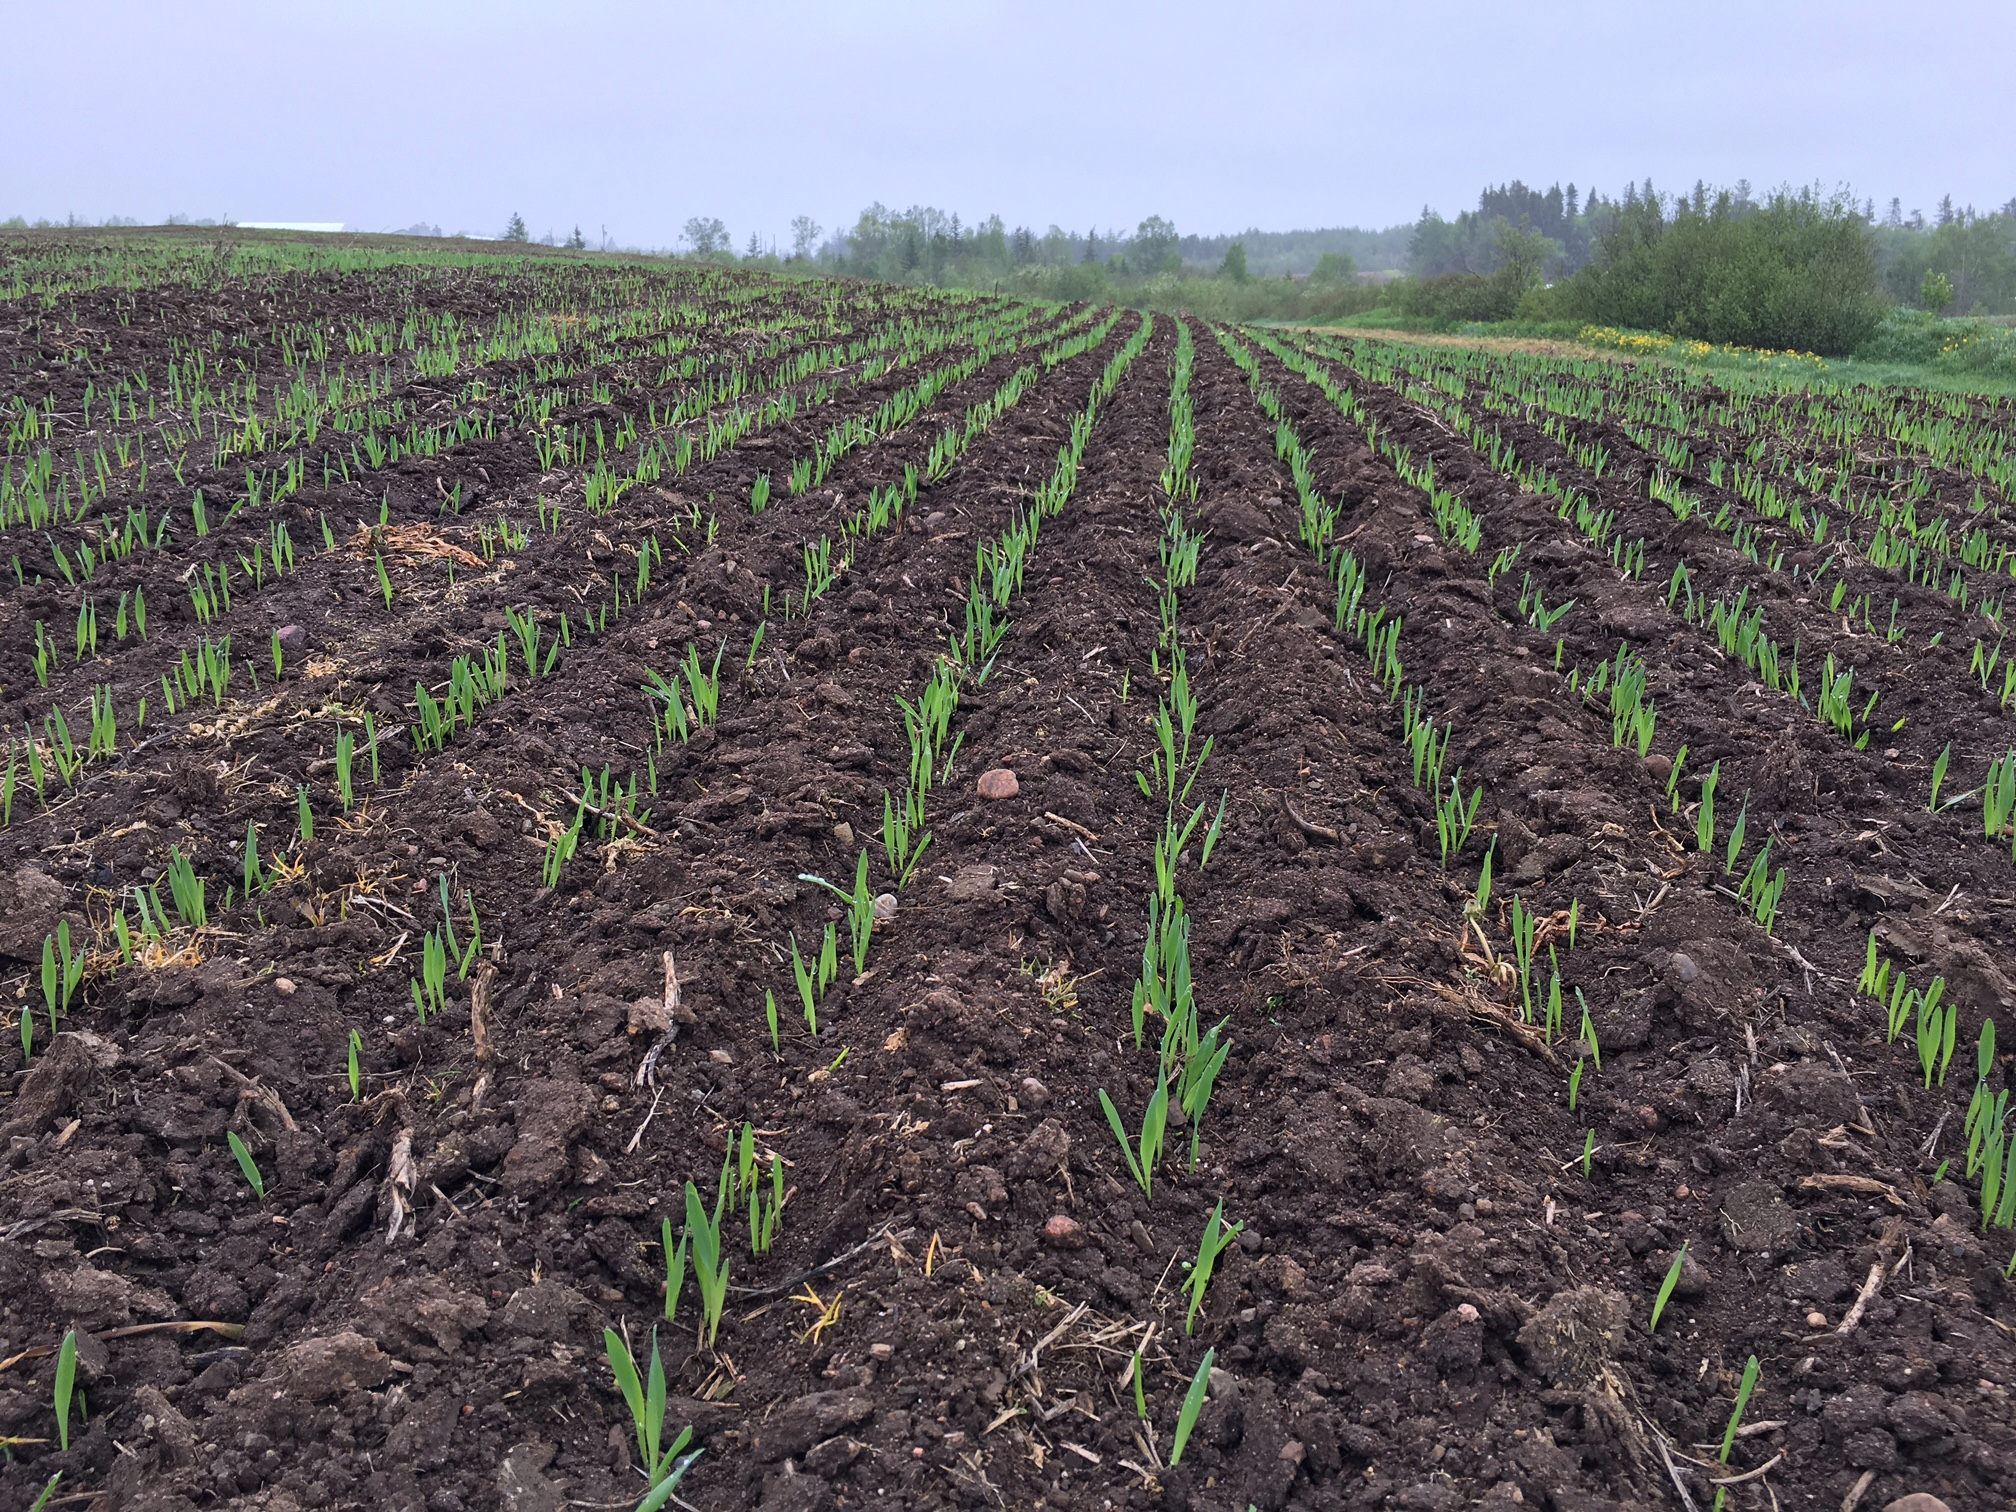 Newfoundland and Labrador's inaugural malting barley crop has taken root at Ian Richardson's Larch Grove Farm in Cormack.